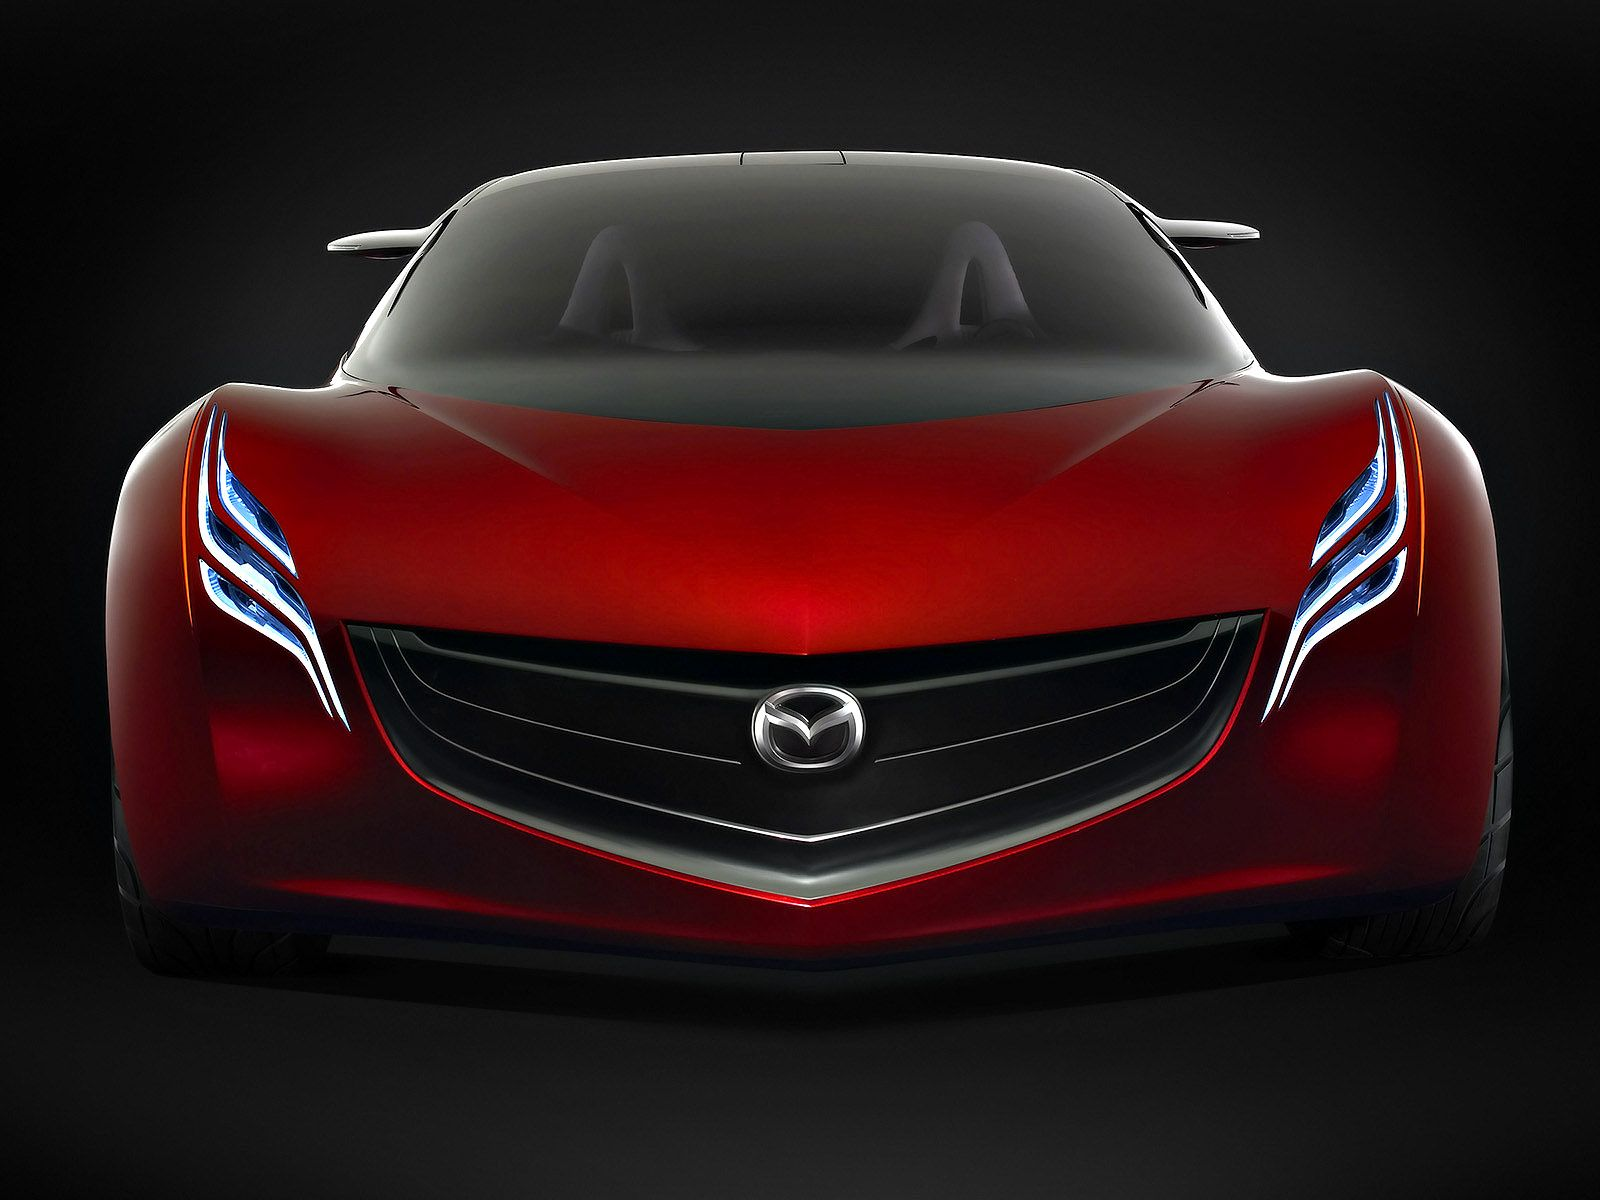 Mazda Ryuga Concept Full Front View Wallpaper 1600x1200